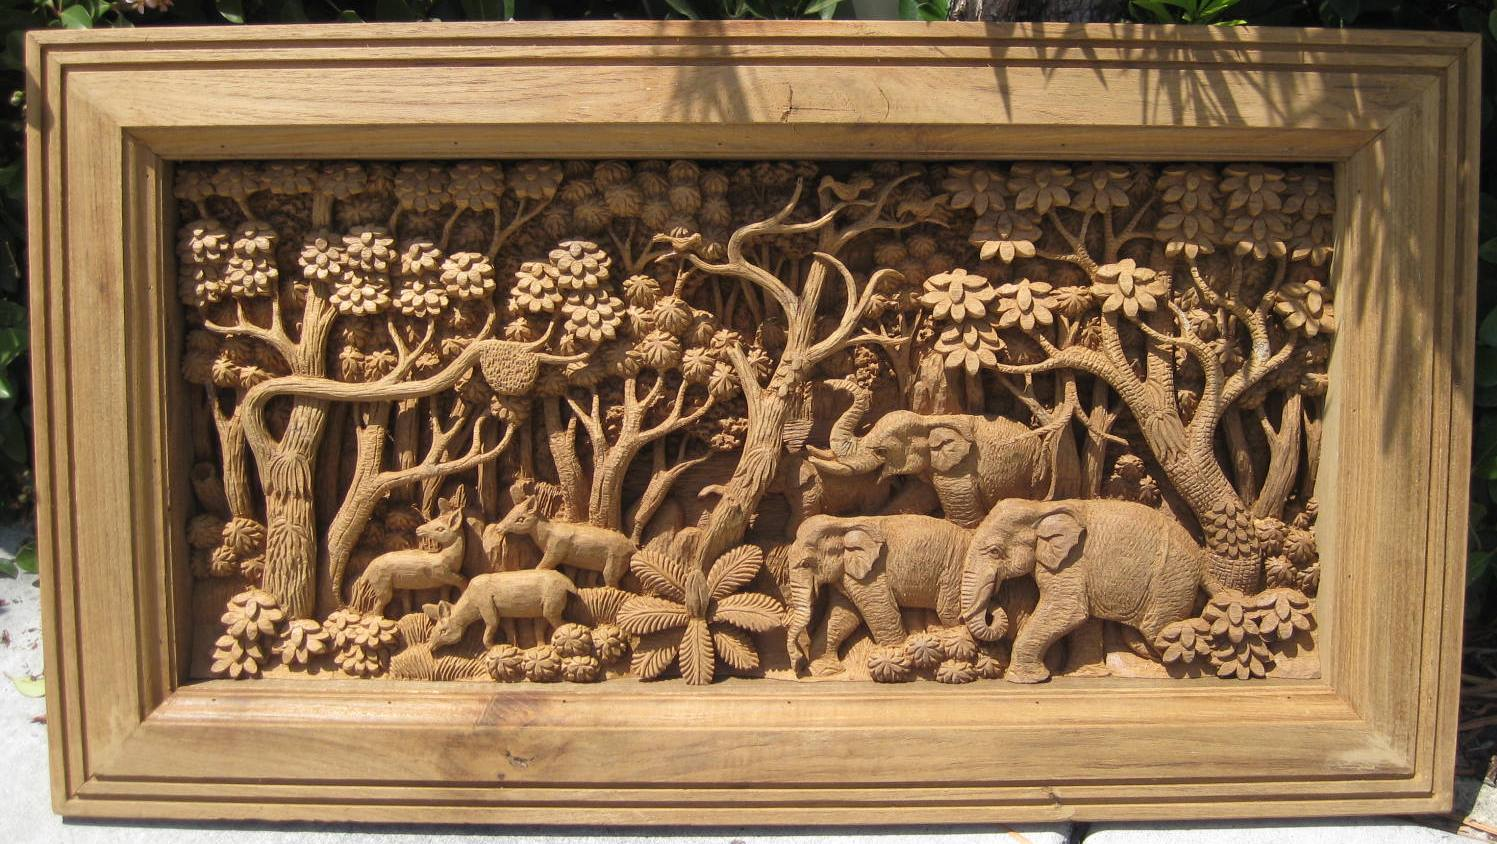 Teak Panel Teak Wood Panels Teak Wood Carvings Herds Of